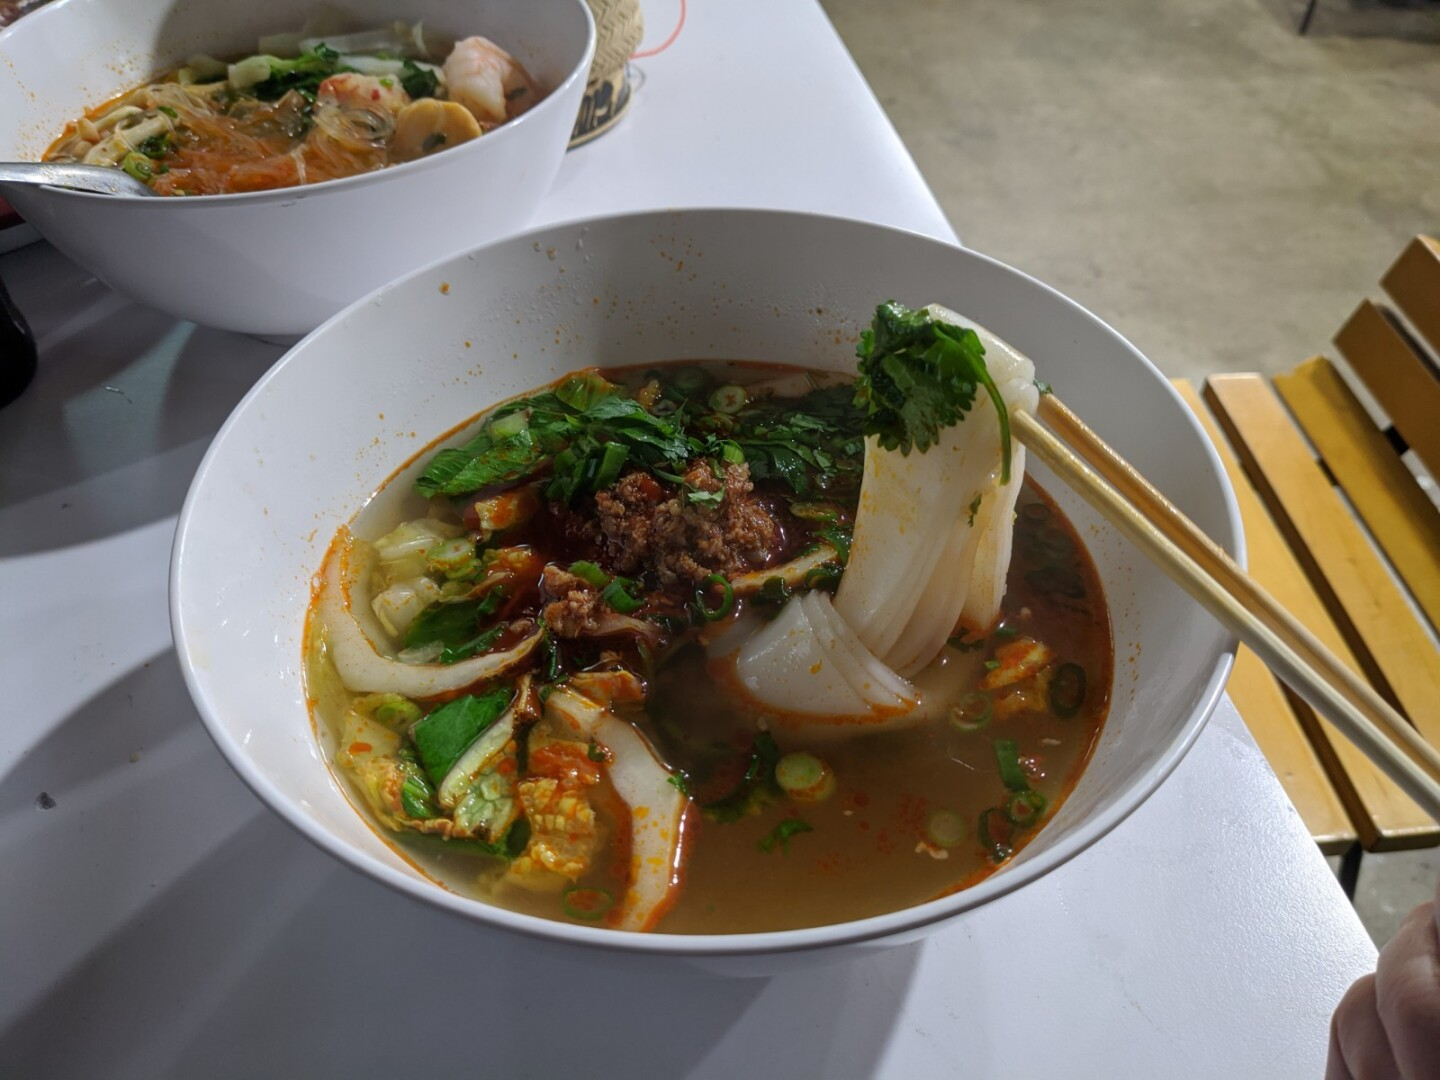 A bowl of khao soi, rice noodle in a clear pork broth underneath sautéed fermented soybeans, dried chilis and minced pork.